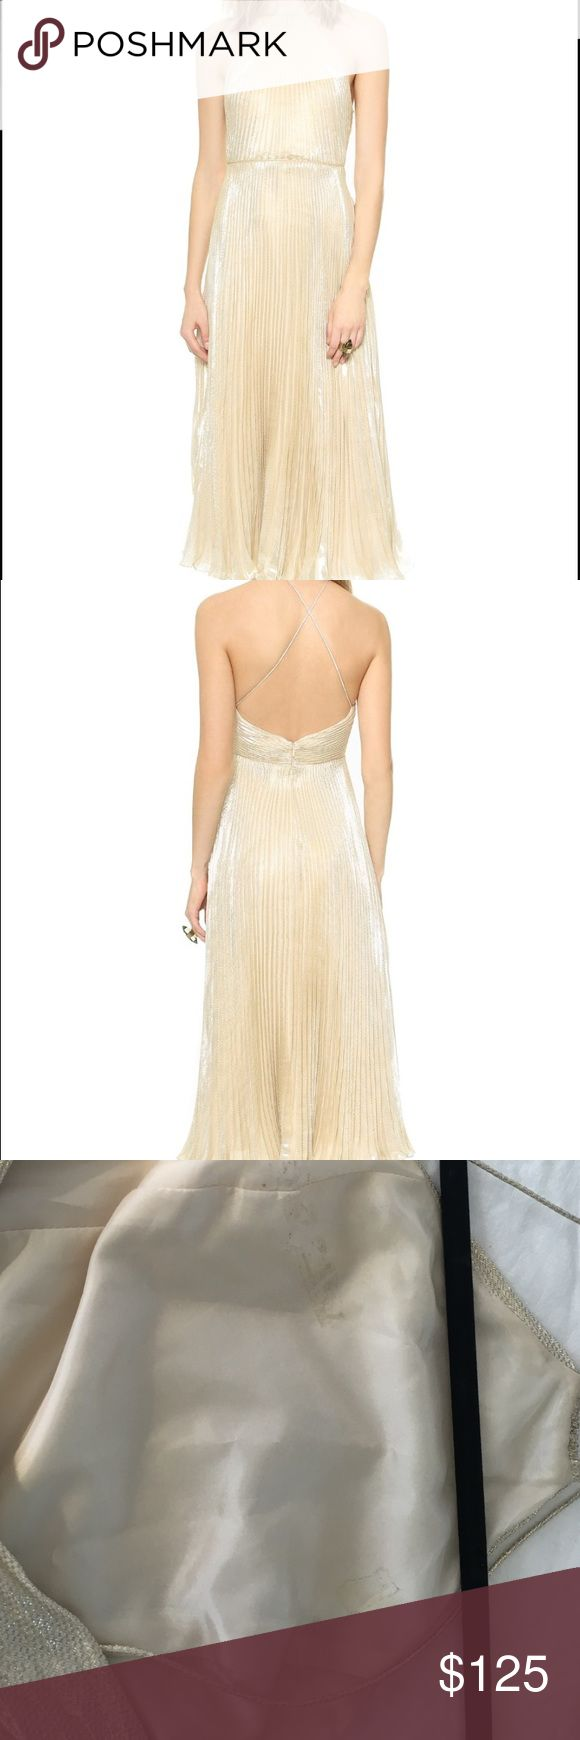 Jill Jill Stuart gold halter gown Sz 6 Worn once to wedding! Excellent condition except for marks on inside slip from fashion tape. Shown in pic. Crisp pleats and patterned lamé create an optical effect on a glamorous Jill Jill Stuart halter gown. Spaghetti straps crisscross the open back, and a seam defines the waist. Hidden zip. Lined.  Fabric: Lamé. Shell: 61% silk/39% metallic. Lining: 100% polyester. Dry clean. Imported, China.  Measurements Length: 48.5in / 123cm, from shoulder Jill…